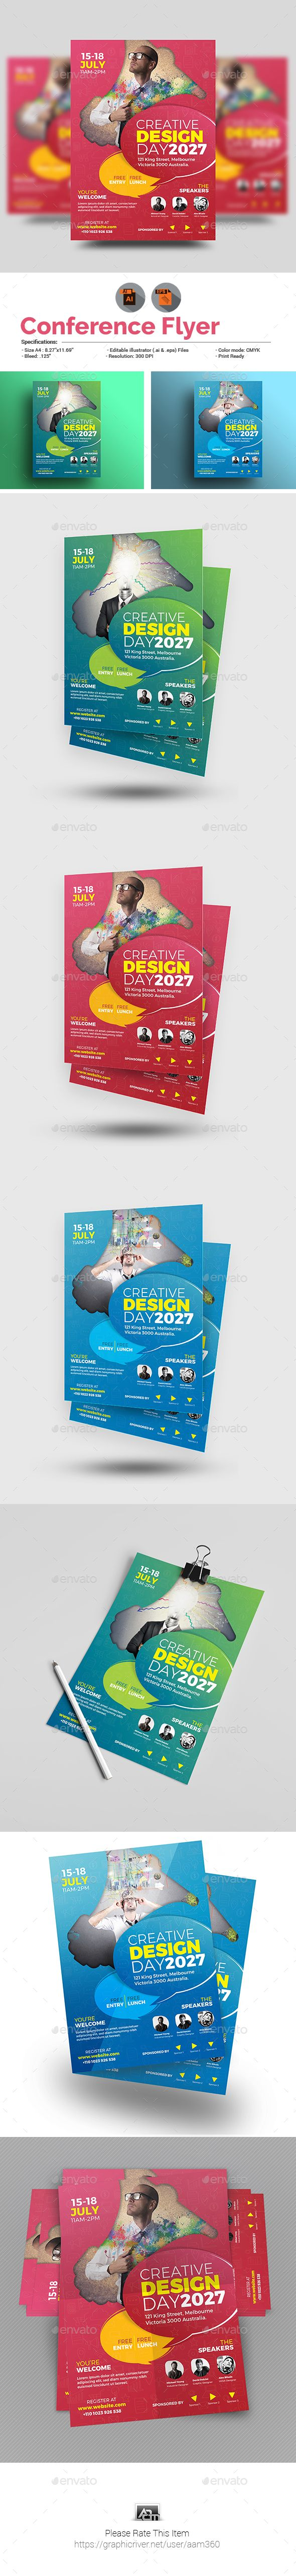 Conference Flyer  Flyer Template Illustrator Cs And Template